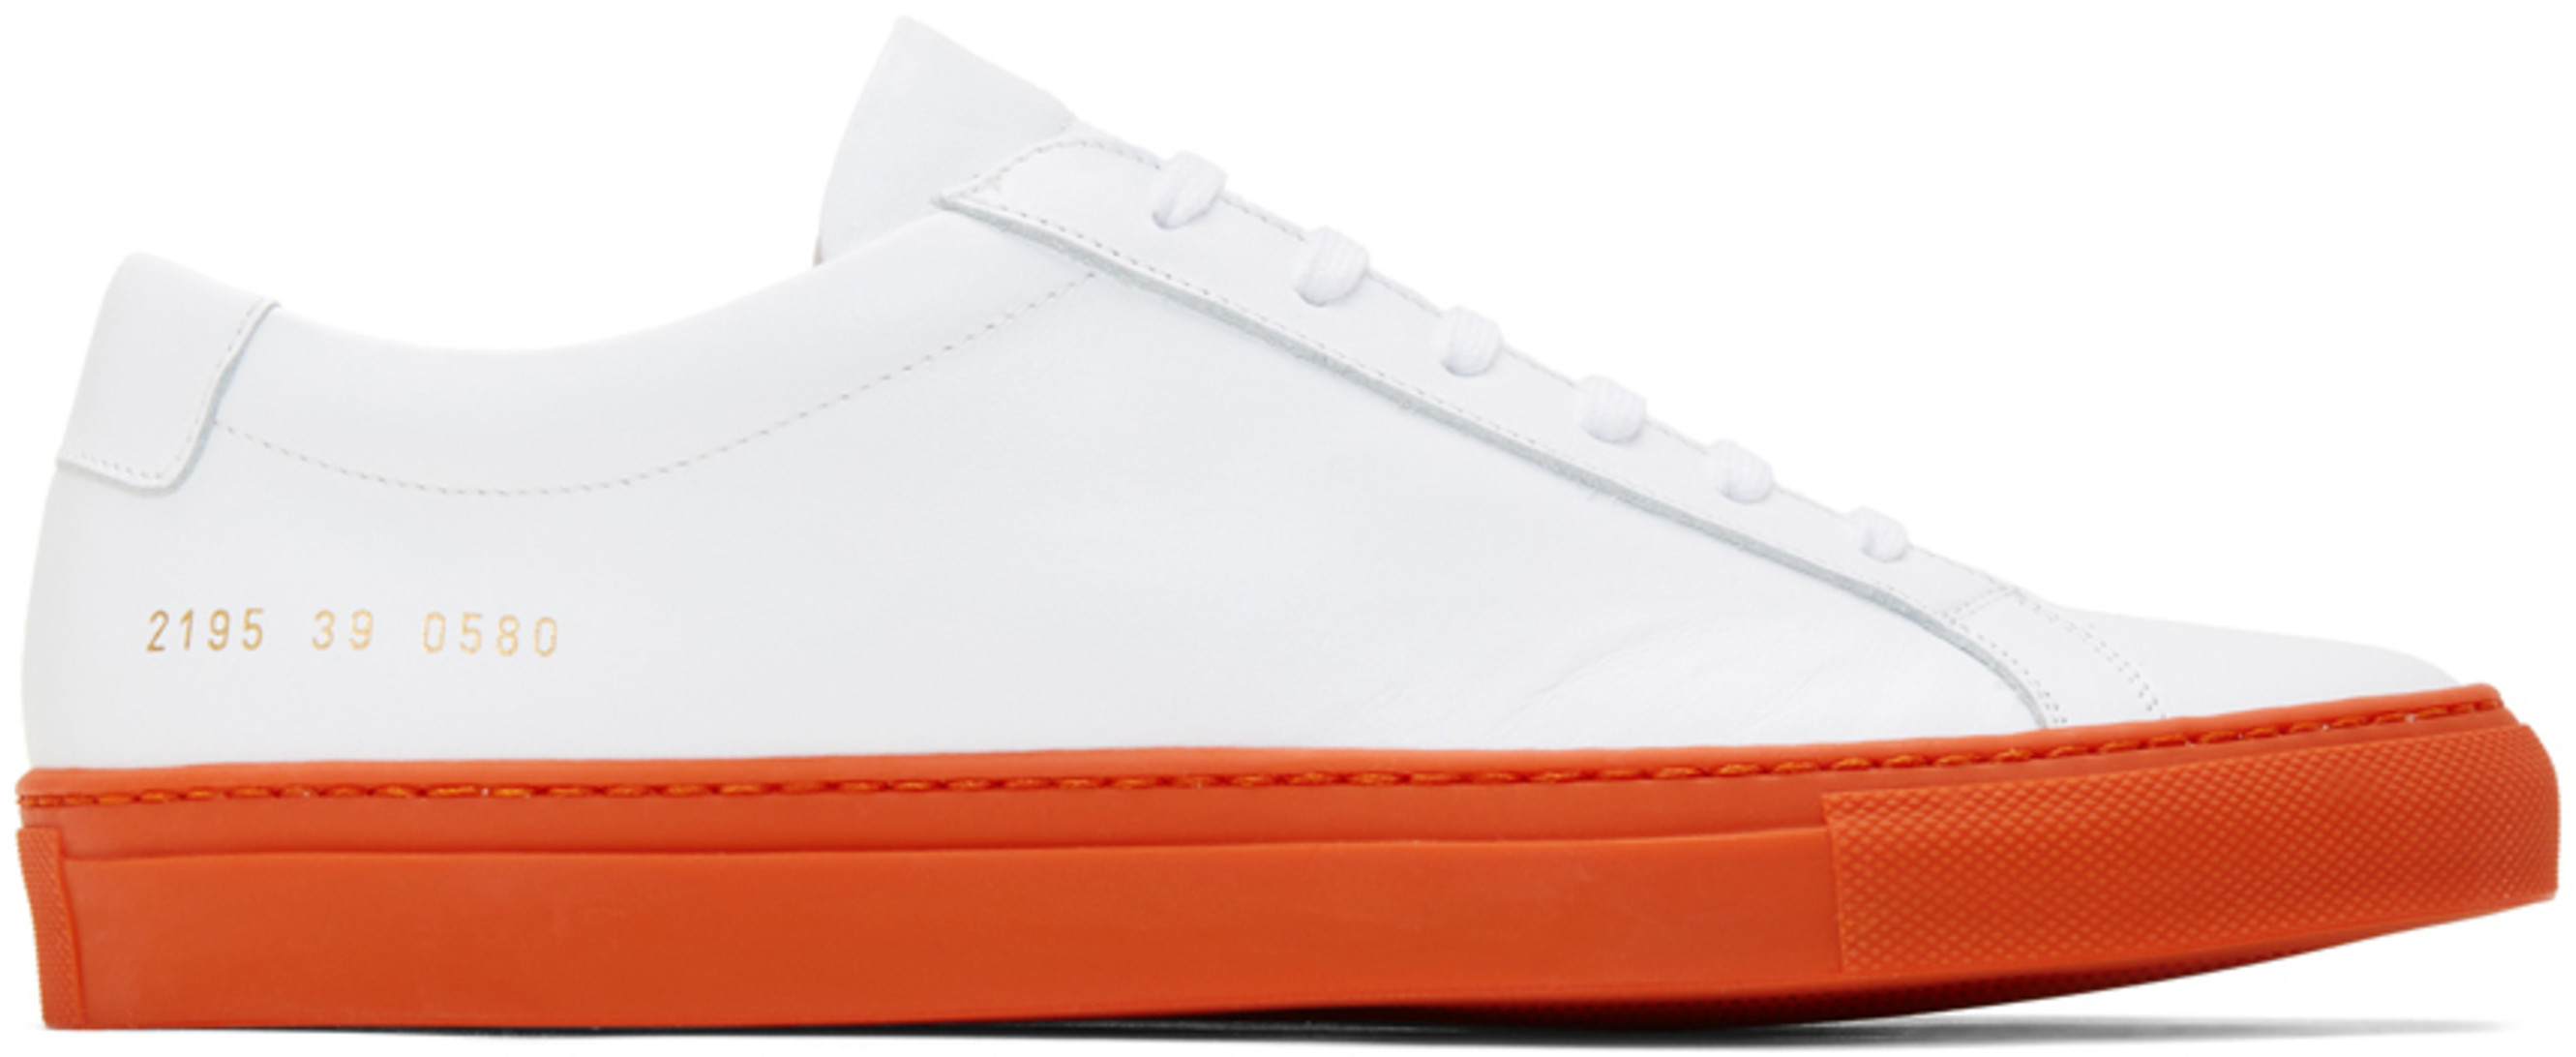 3db442ef385a58 Common Projects for Men FW19 Collection | SSENSE